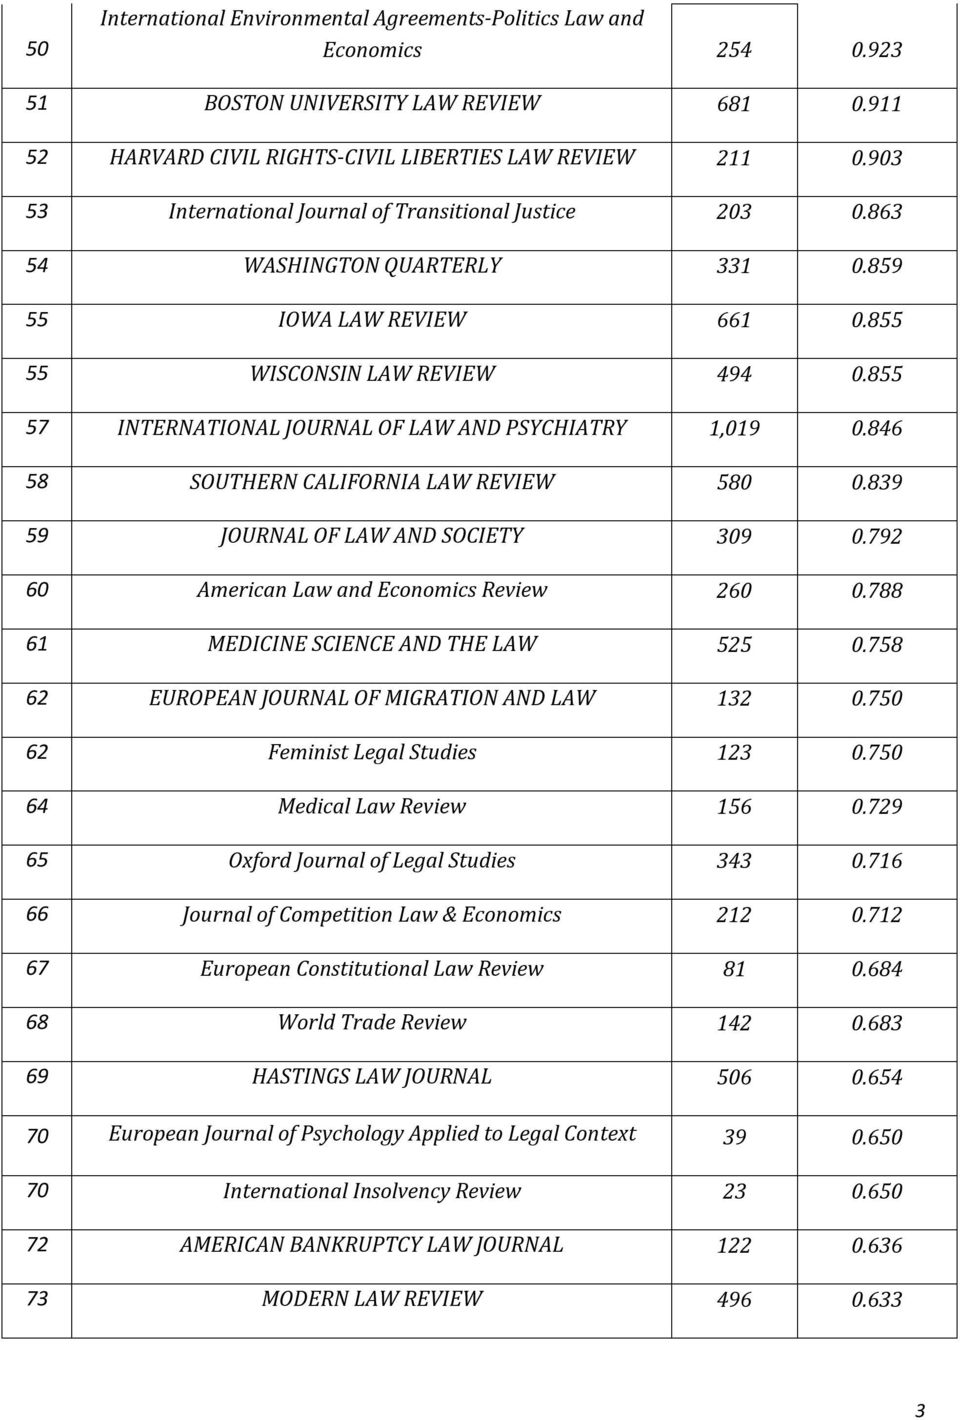 855 57 INTERNATIONAL JOURNAL OF LAW AND PSYCHIATRY 1,019 0.846 58 SOUTHERN CALIFORNIA LAW REVIEW 580 0.839 59 JOURNAL OF LAW AND SOCIETY 309 0.792 60 American Law and Economics Review 260 0.